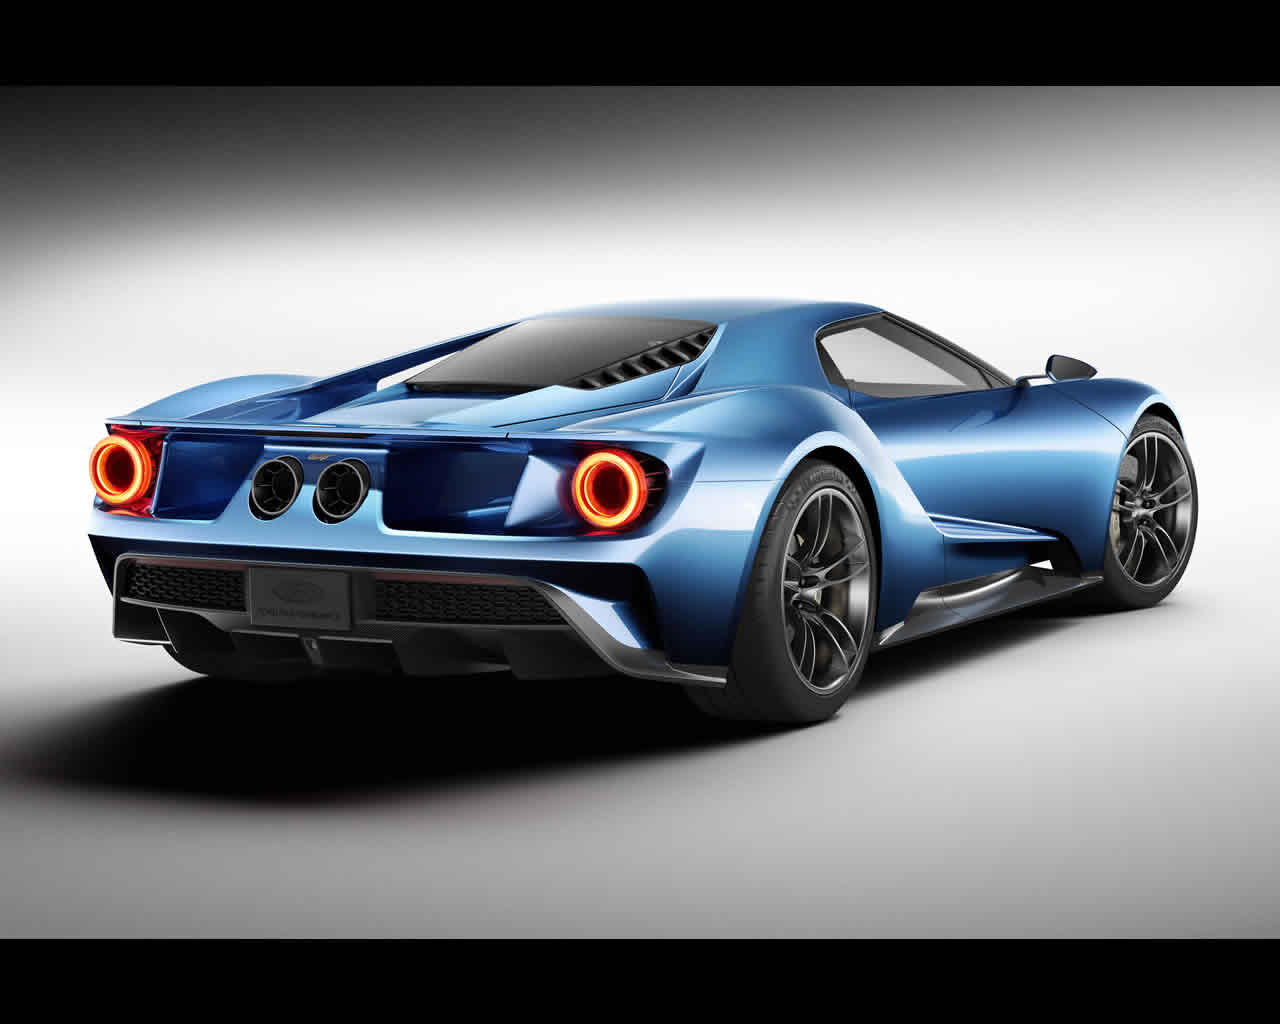 ford gt 2015 supercar related review ford gt40 and gt mkii 1963 1969 1280x1024